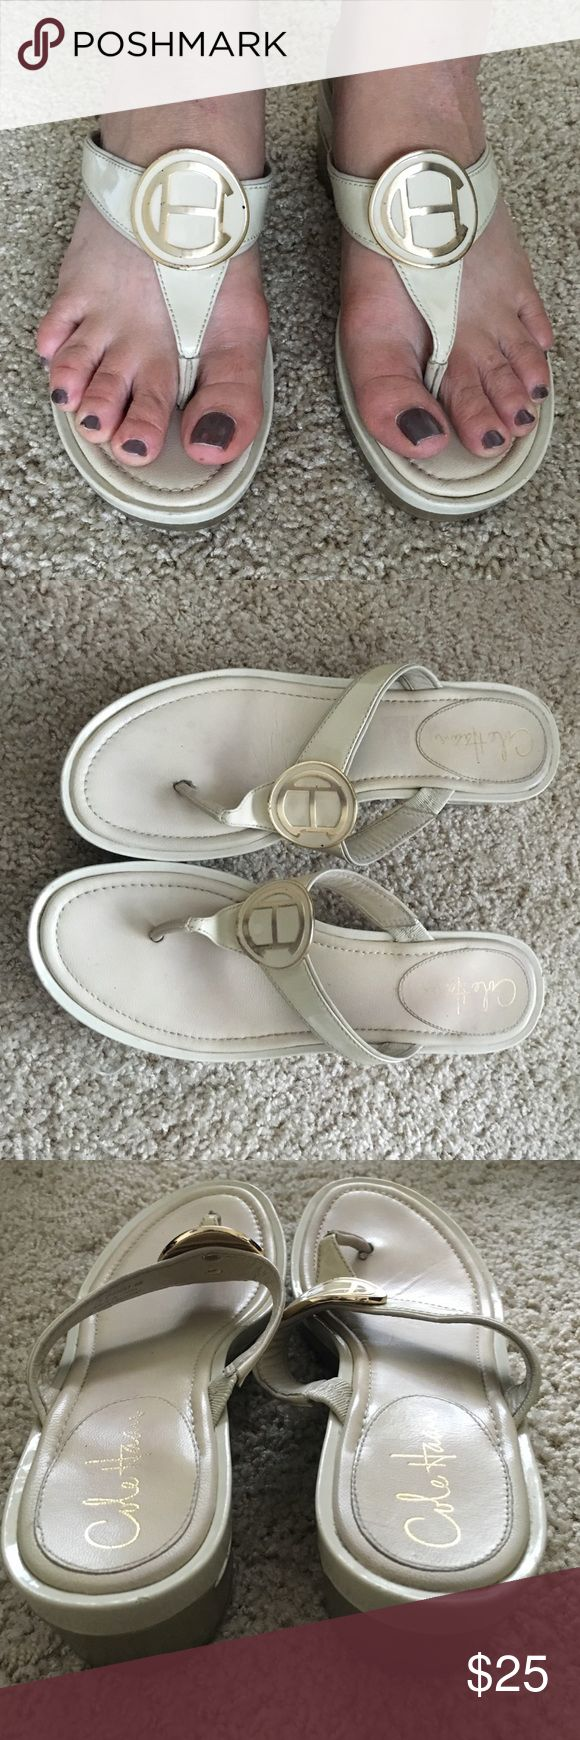 Cole Hahn 8 off white wedge flip-flops Stylish and fun Cole Haan off white with gold accents wedge flip flop sandals size 8M. Cole Haan Shoes Wedges